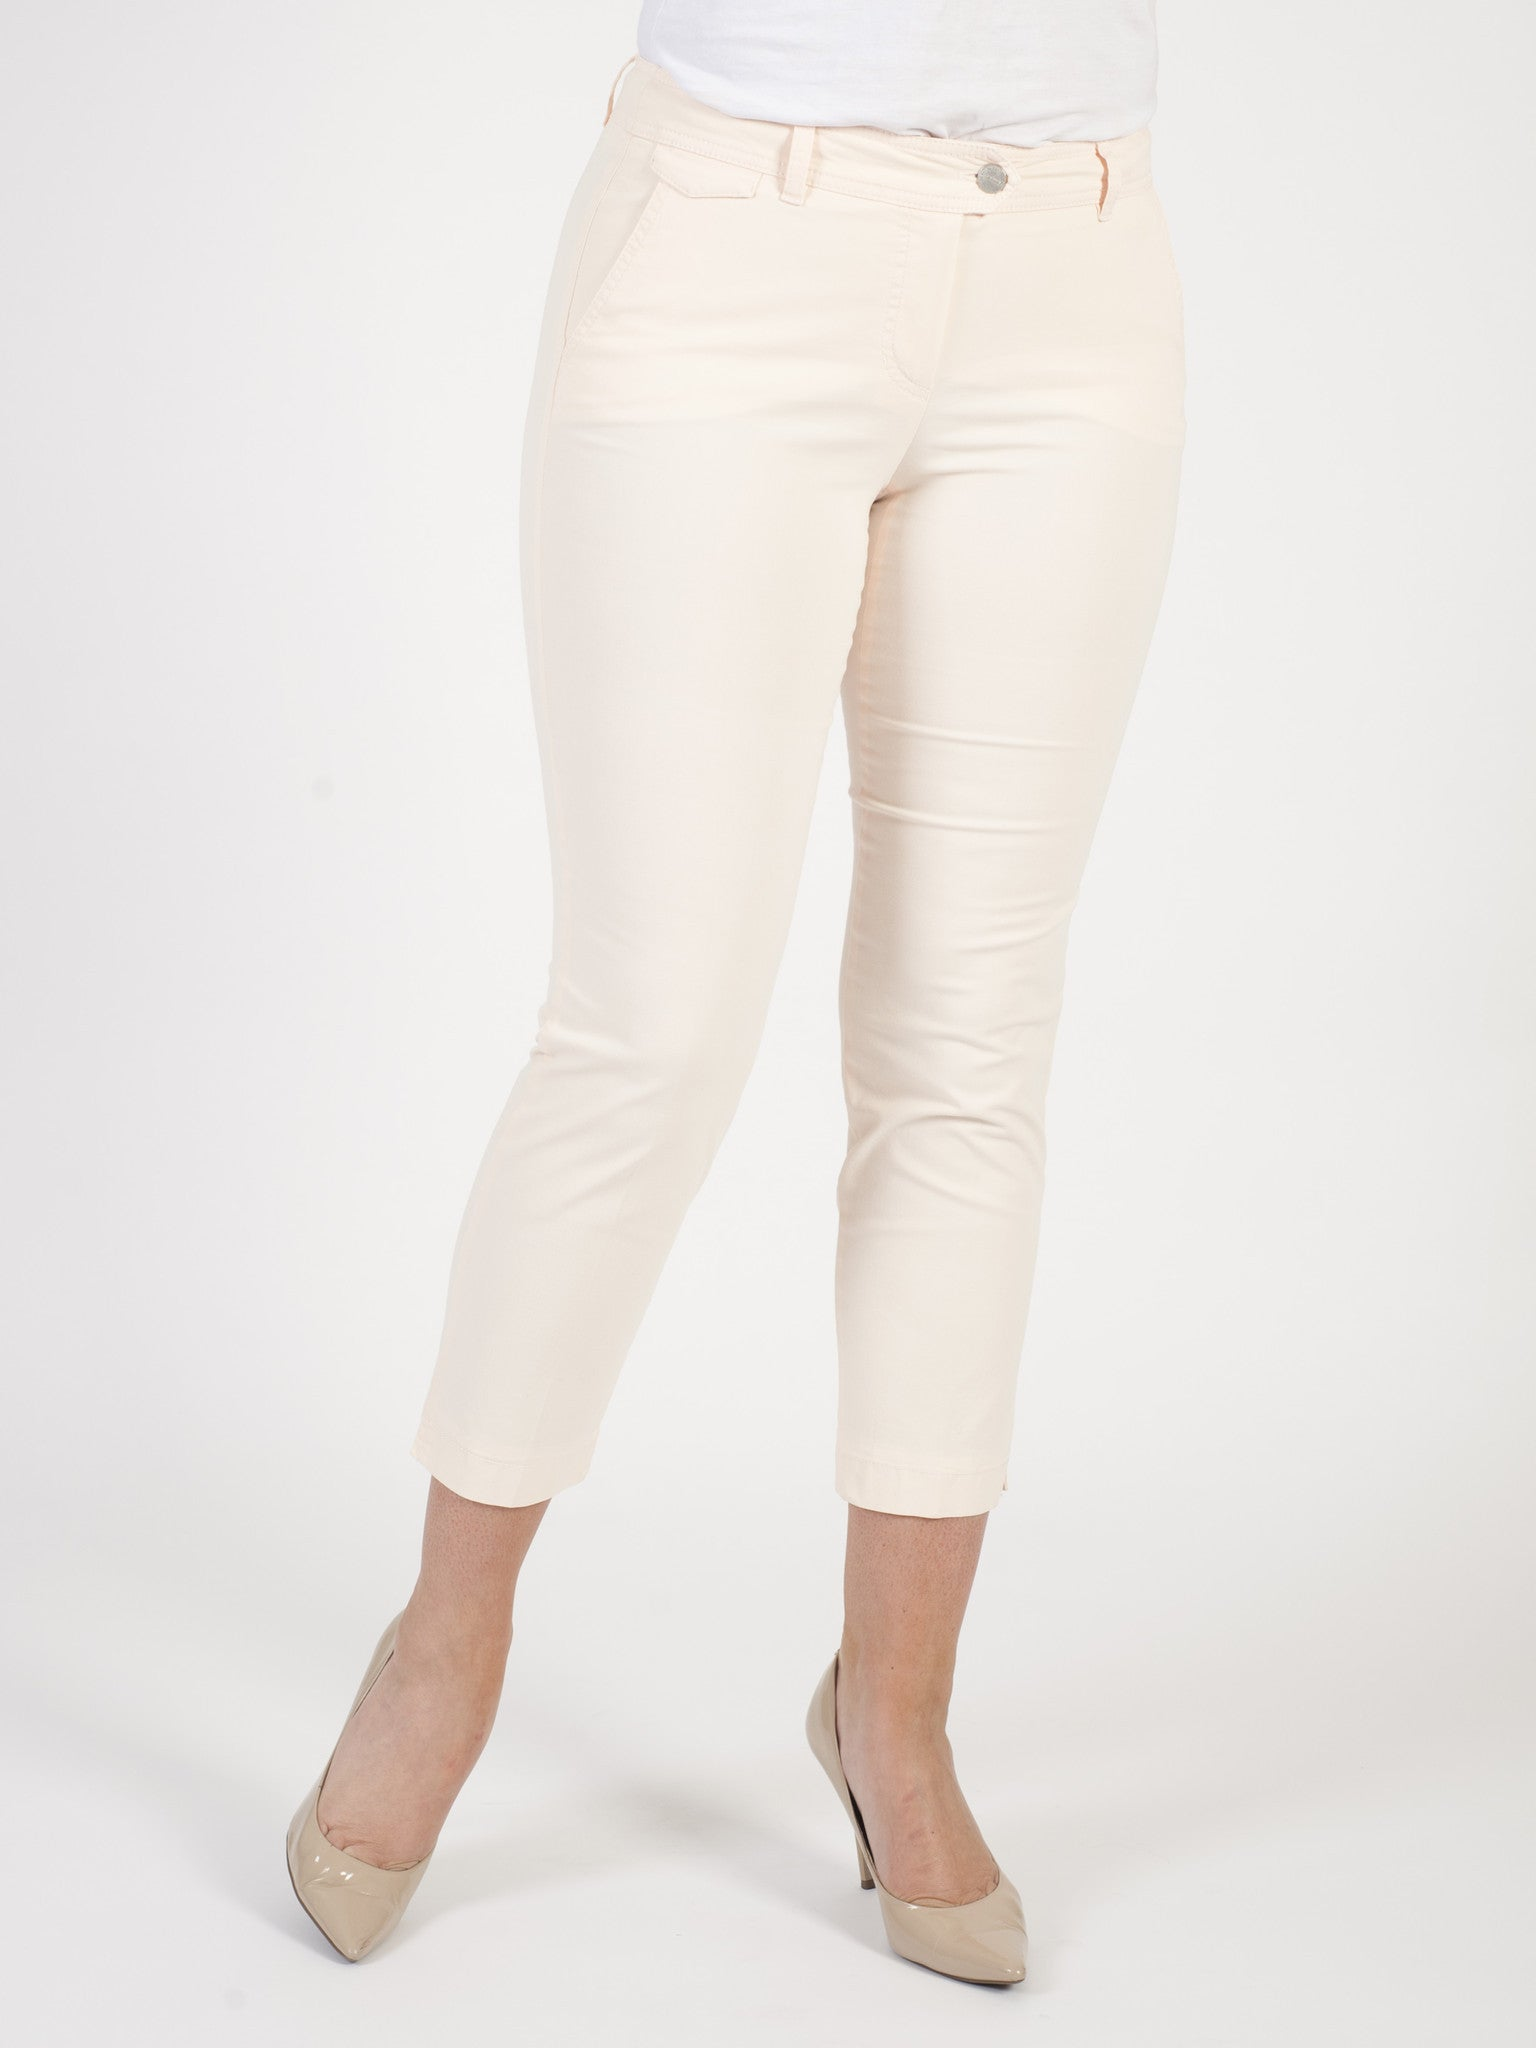 Gerry Weber Apricot 'Patrizia' Stretch Cotton Crop Trousers